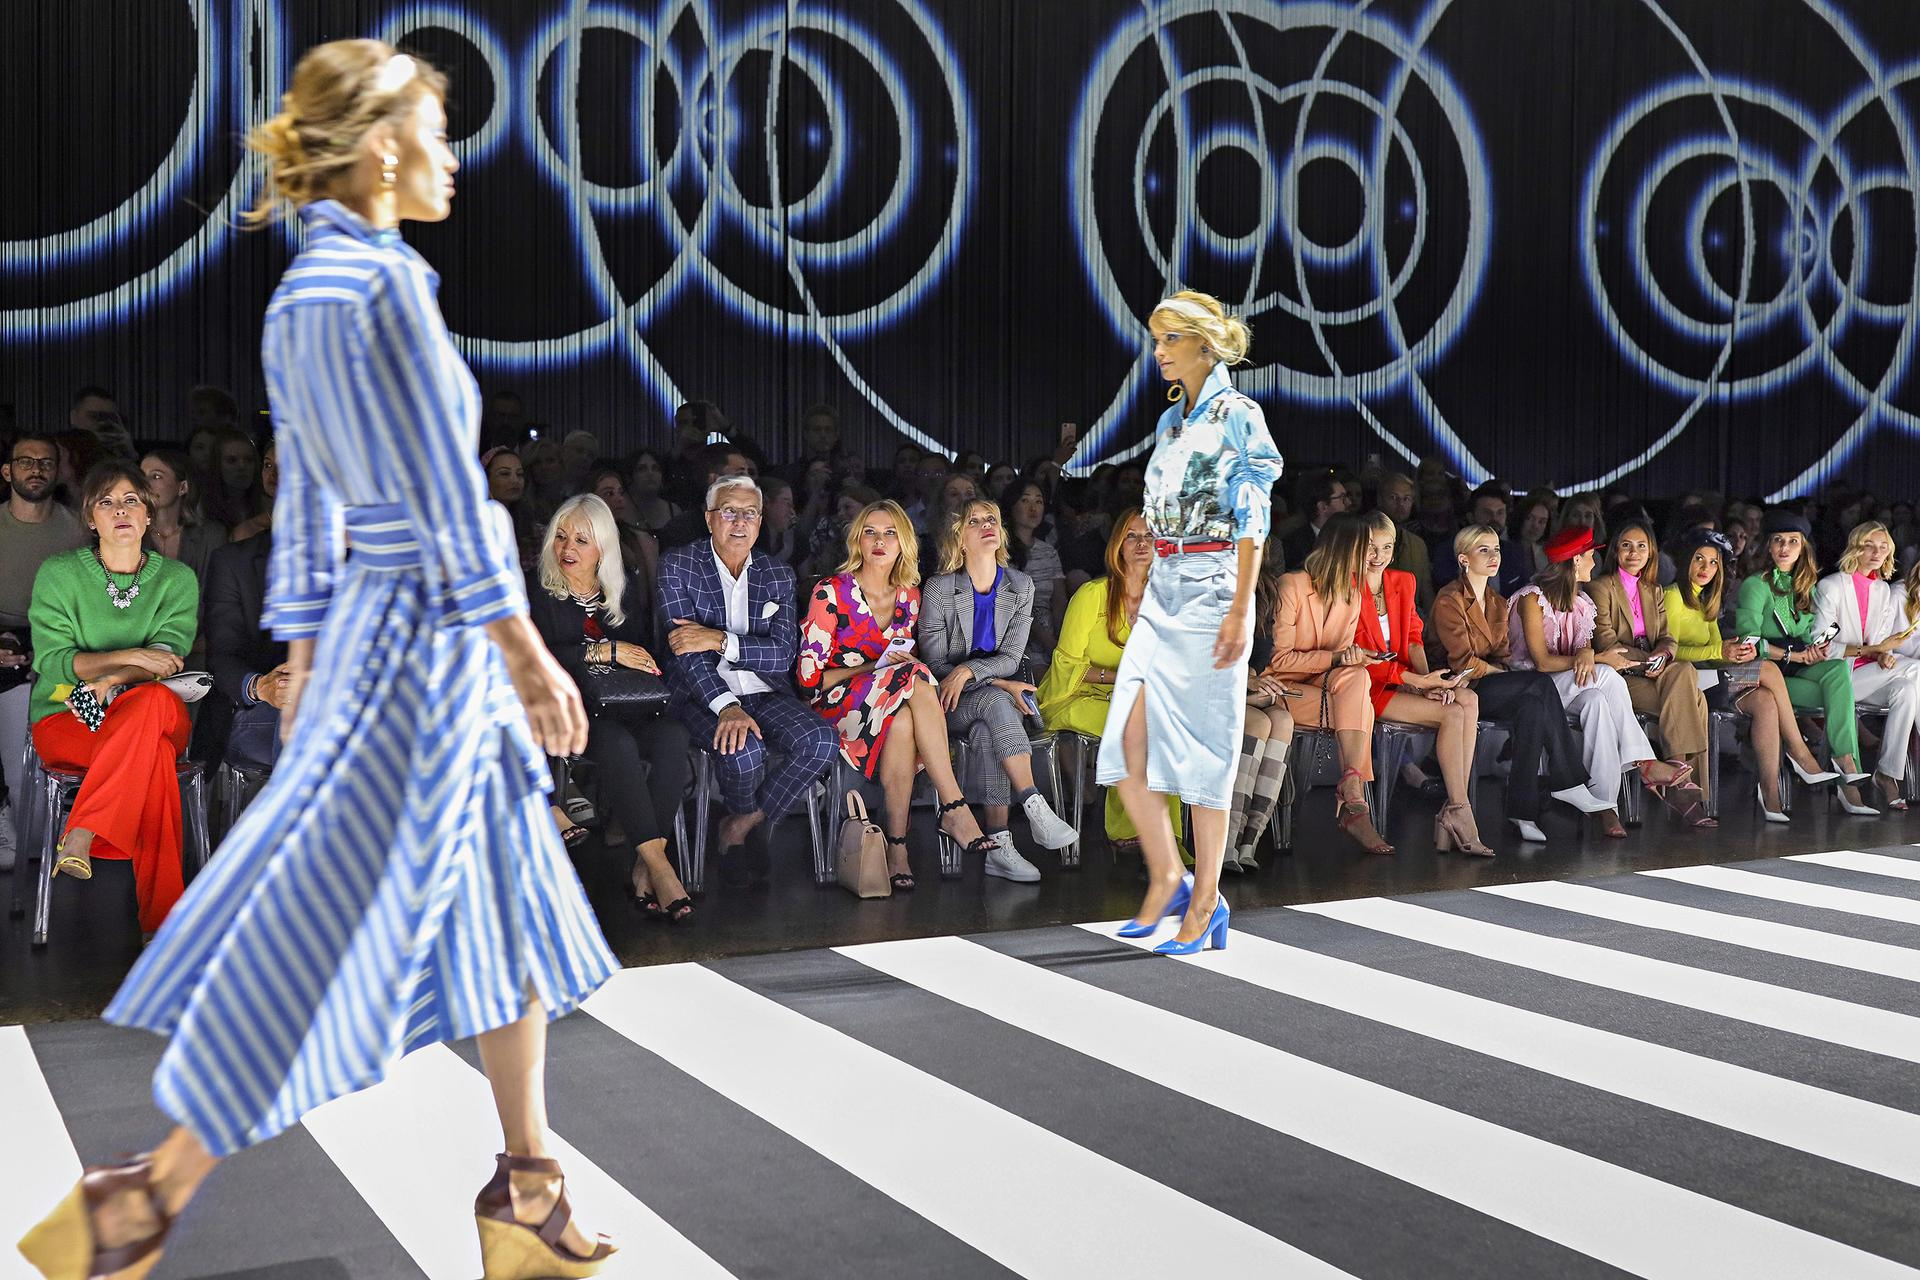 Fashionshow von Marc Cain. (Foto: Getty Images for Marc Cain)